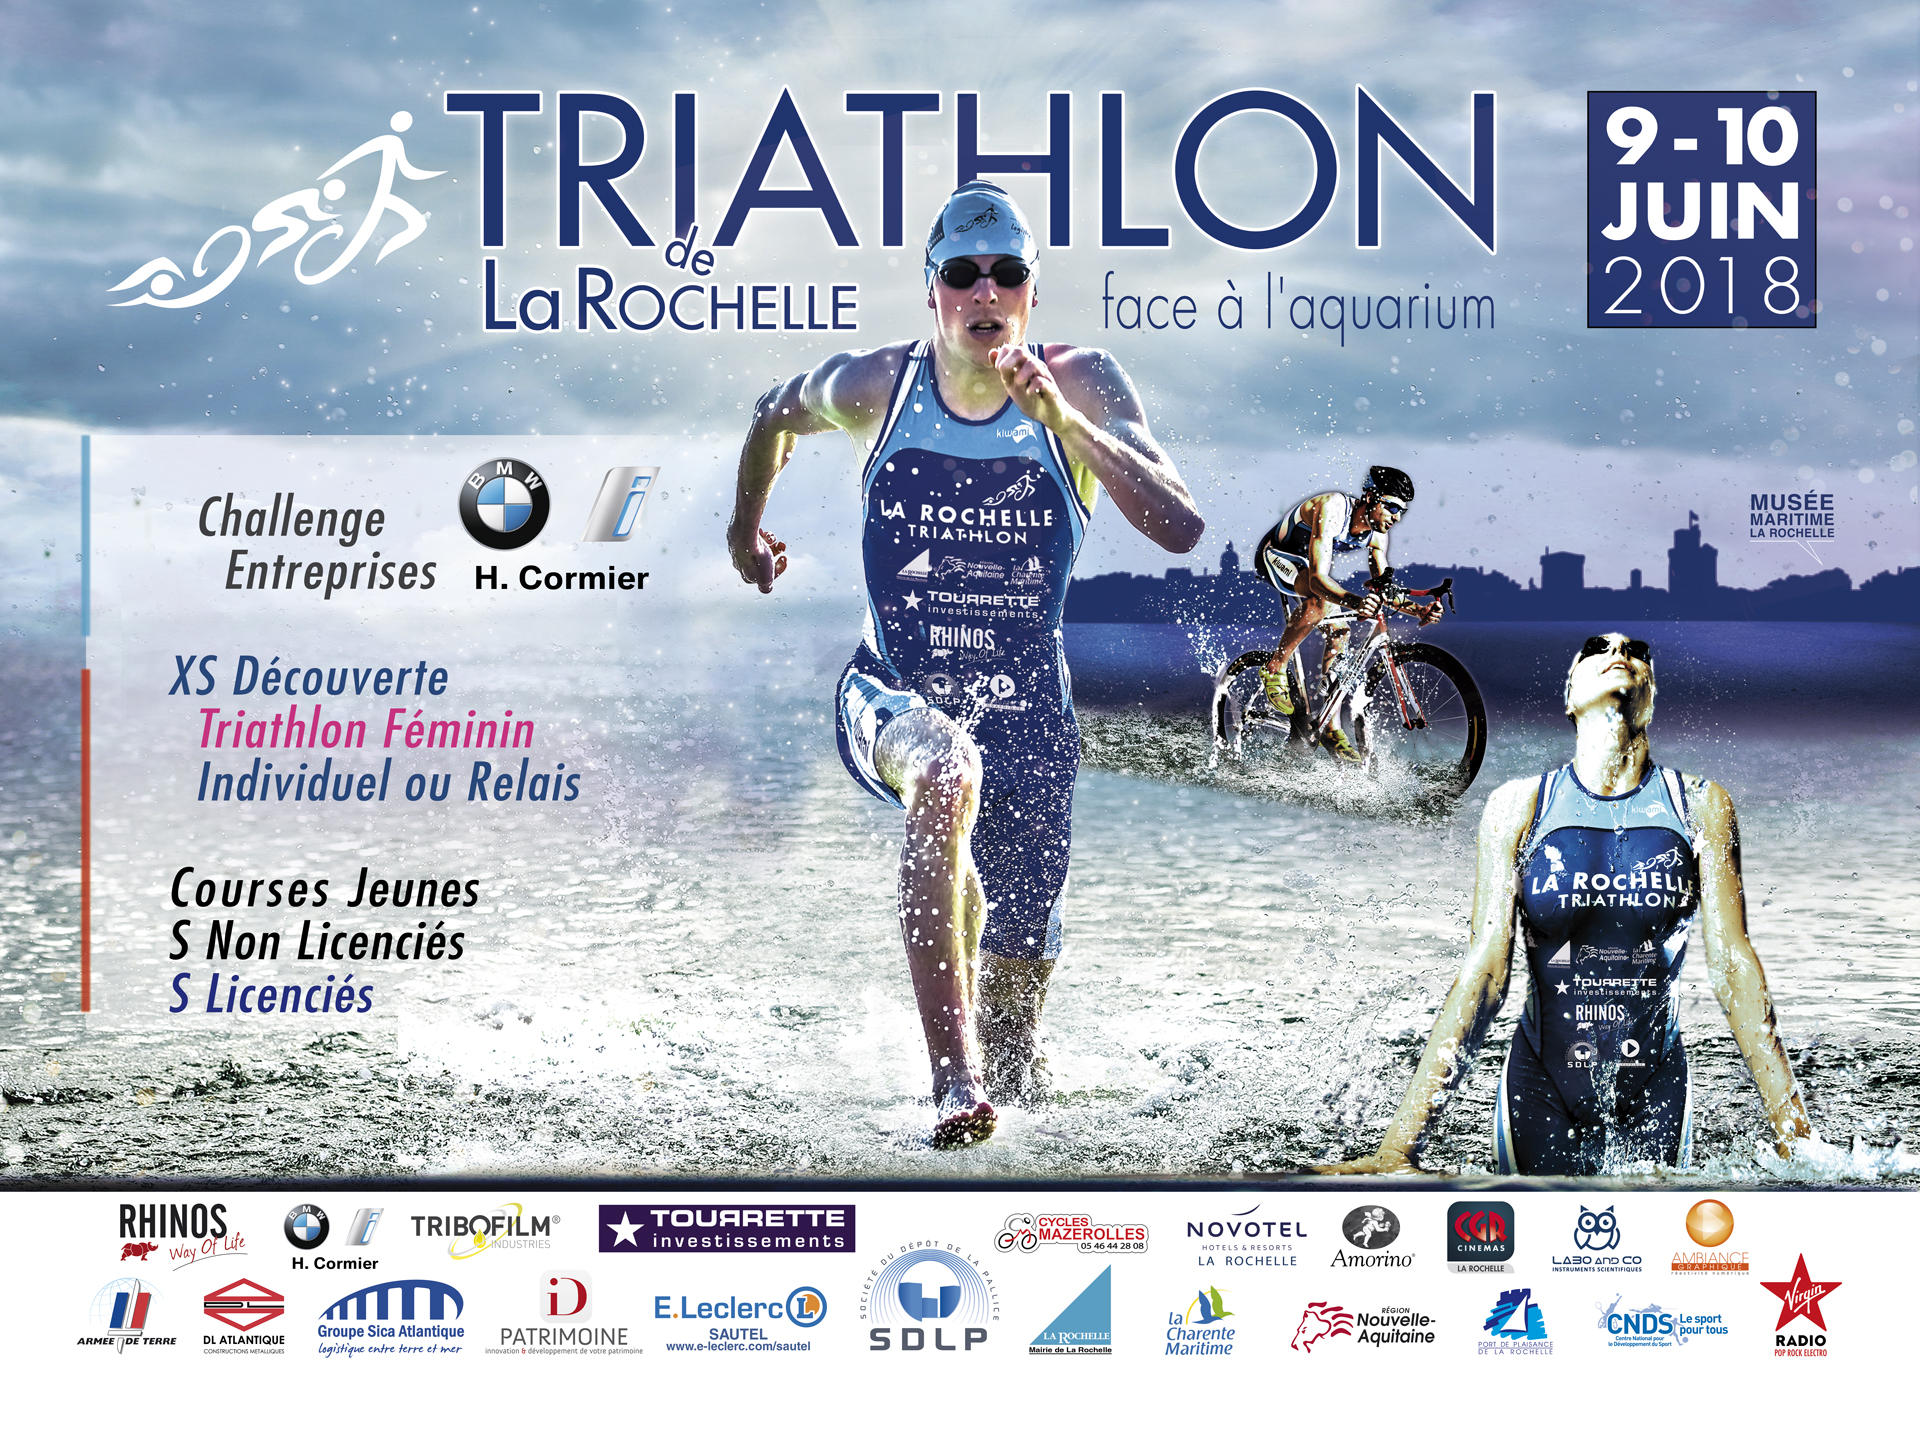 triathlon 10 juin 2018